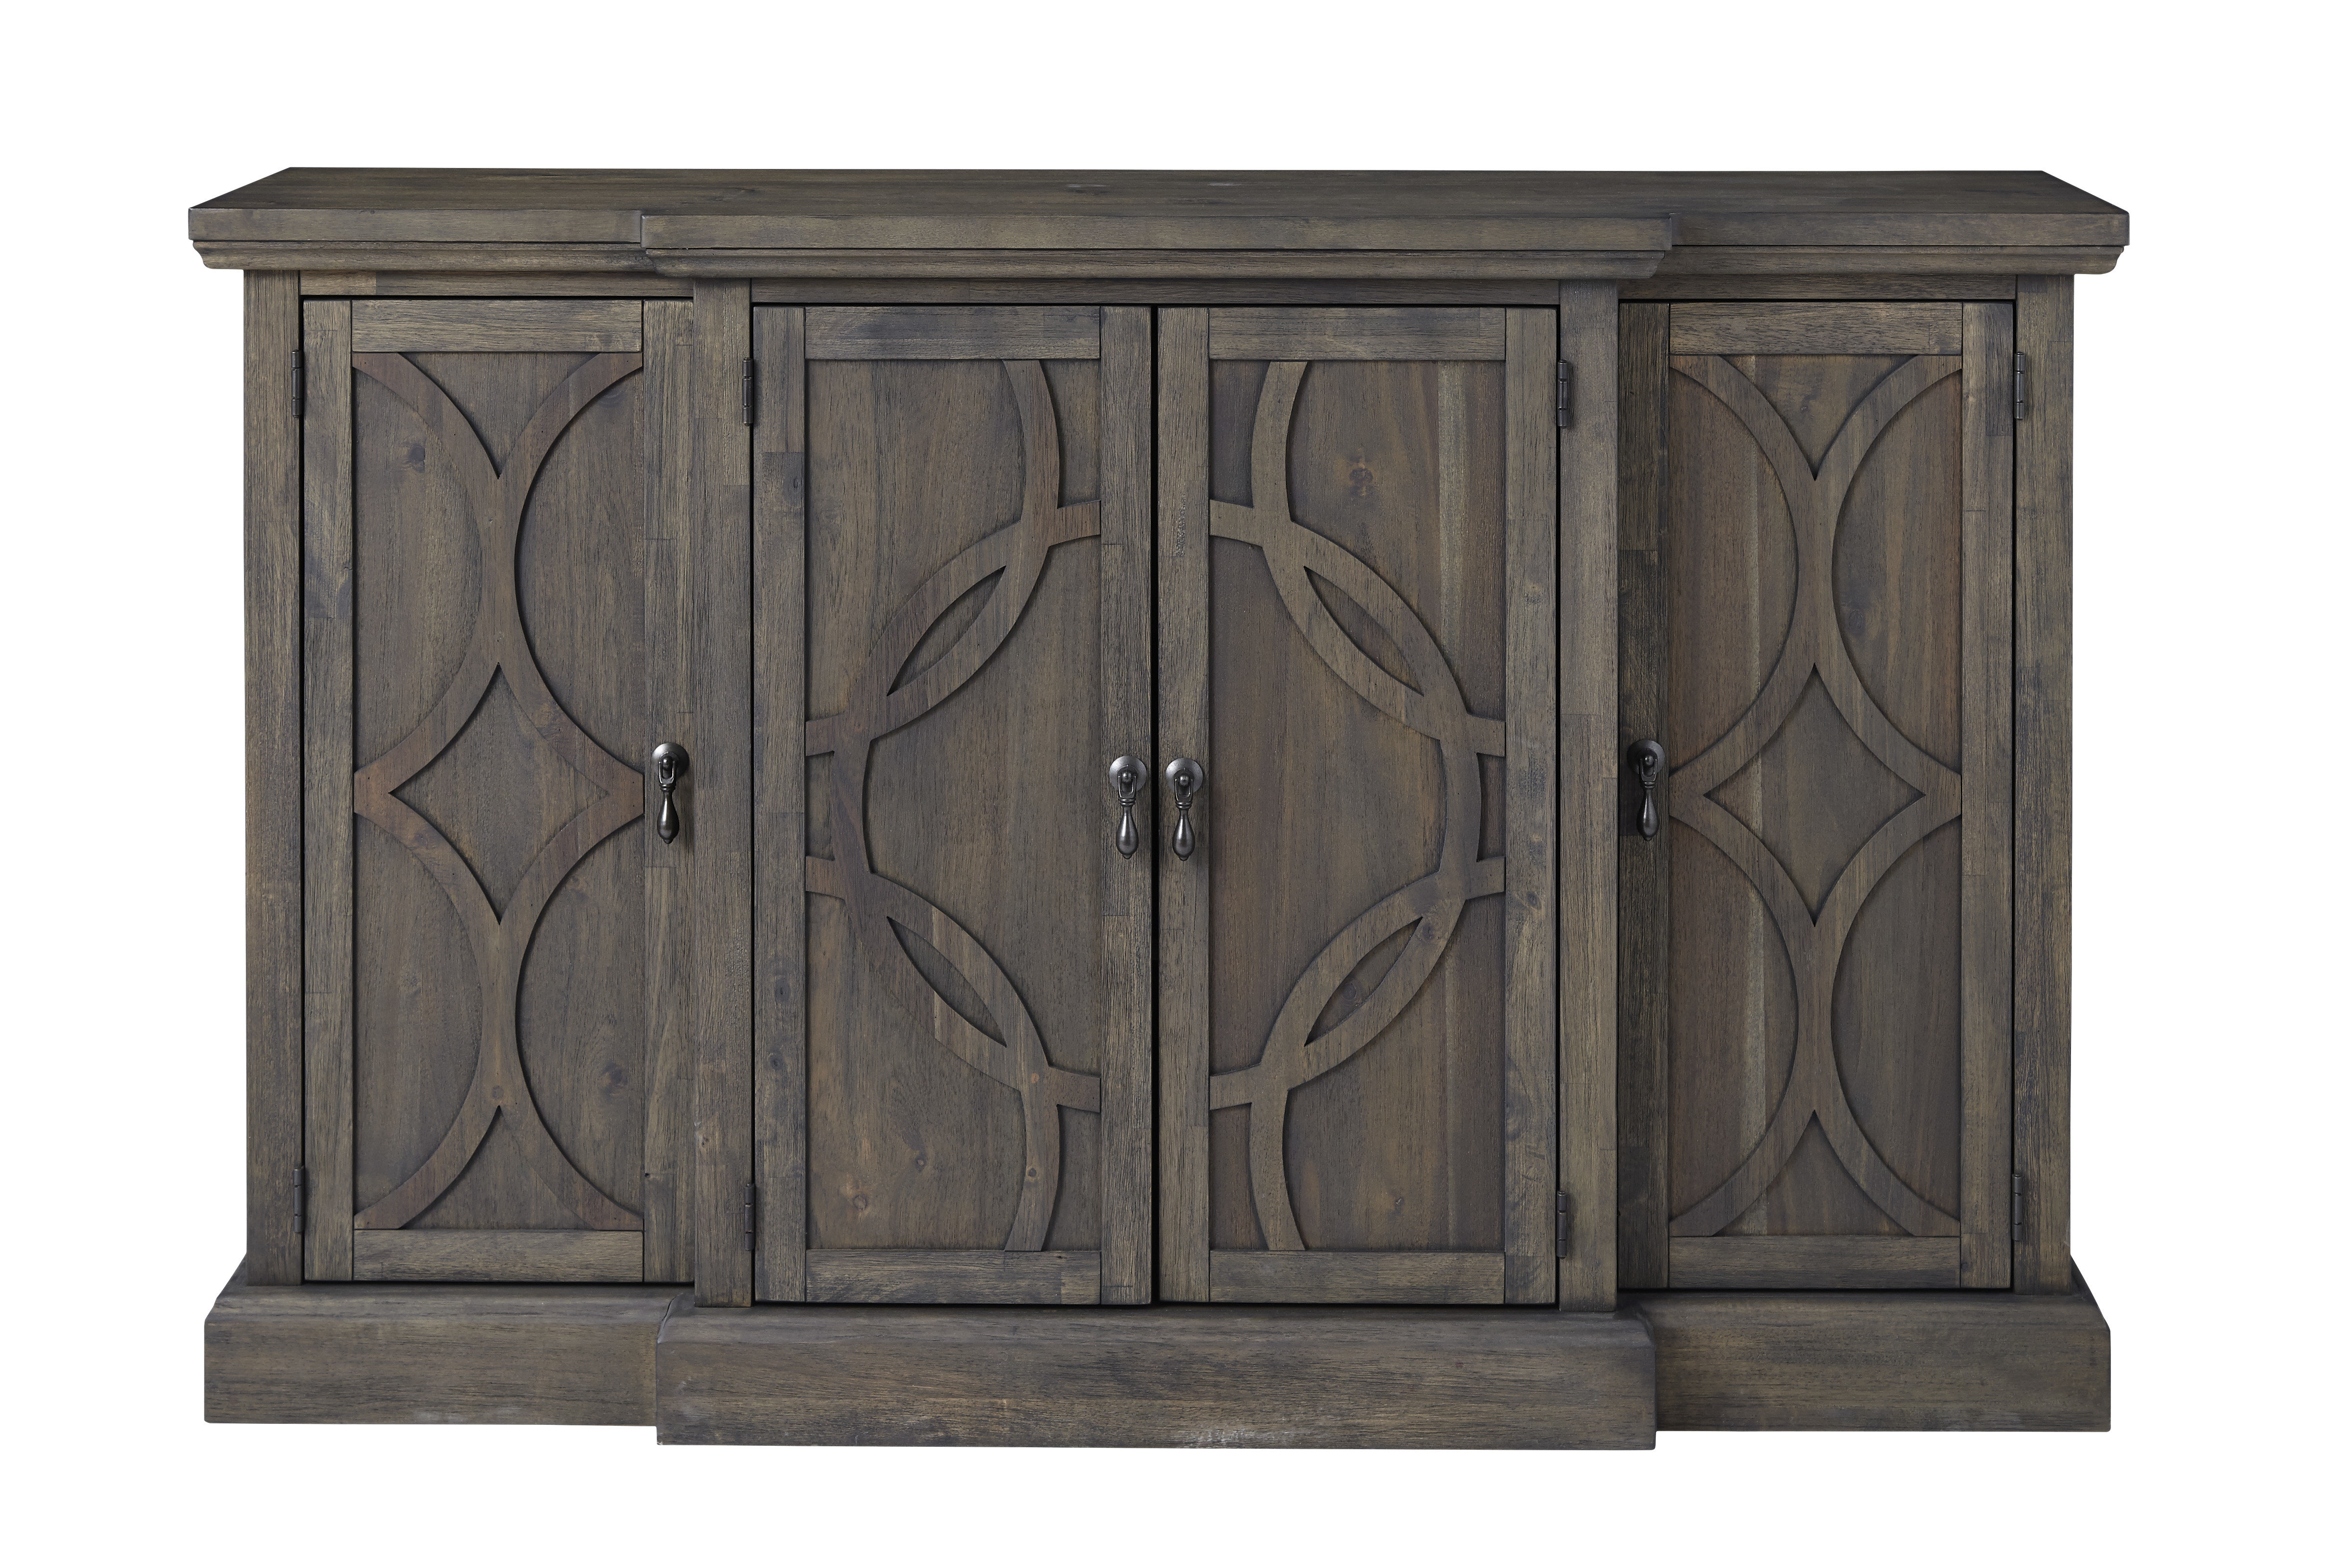 Bremner Credenzas With Best And Newest Shallow Depth Credenza (Gallery 8 of 20)